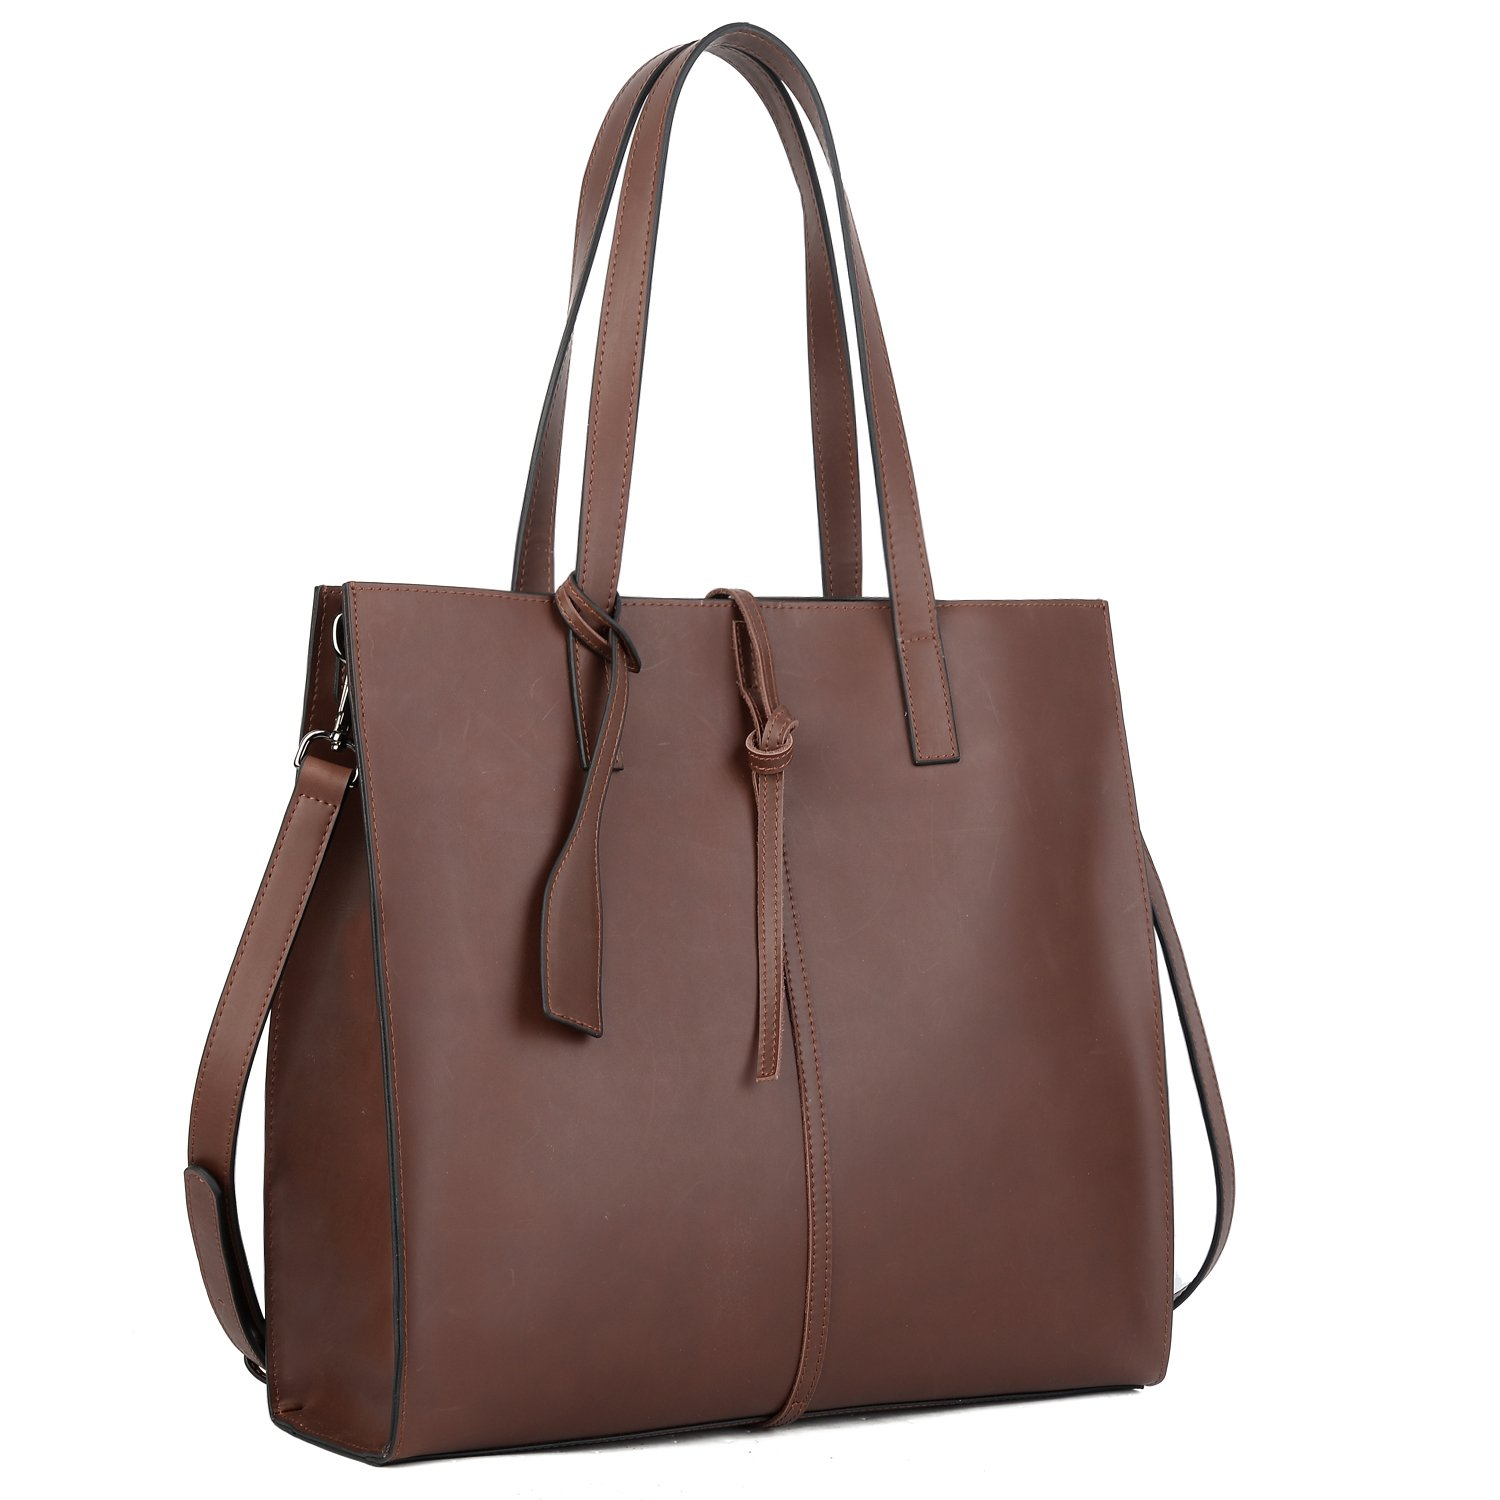 YALUXE Women's Vintage Style Crazy Horse Leather Tote Shoulder Bag Brown